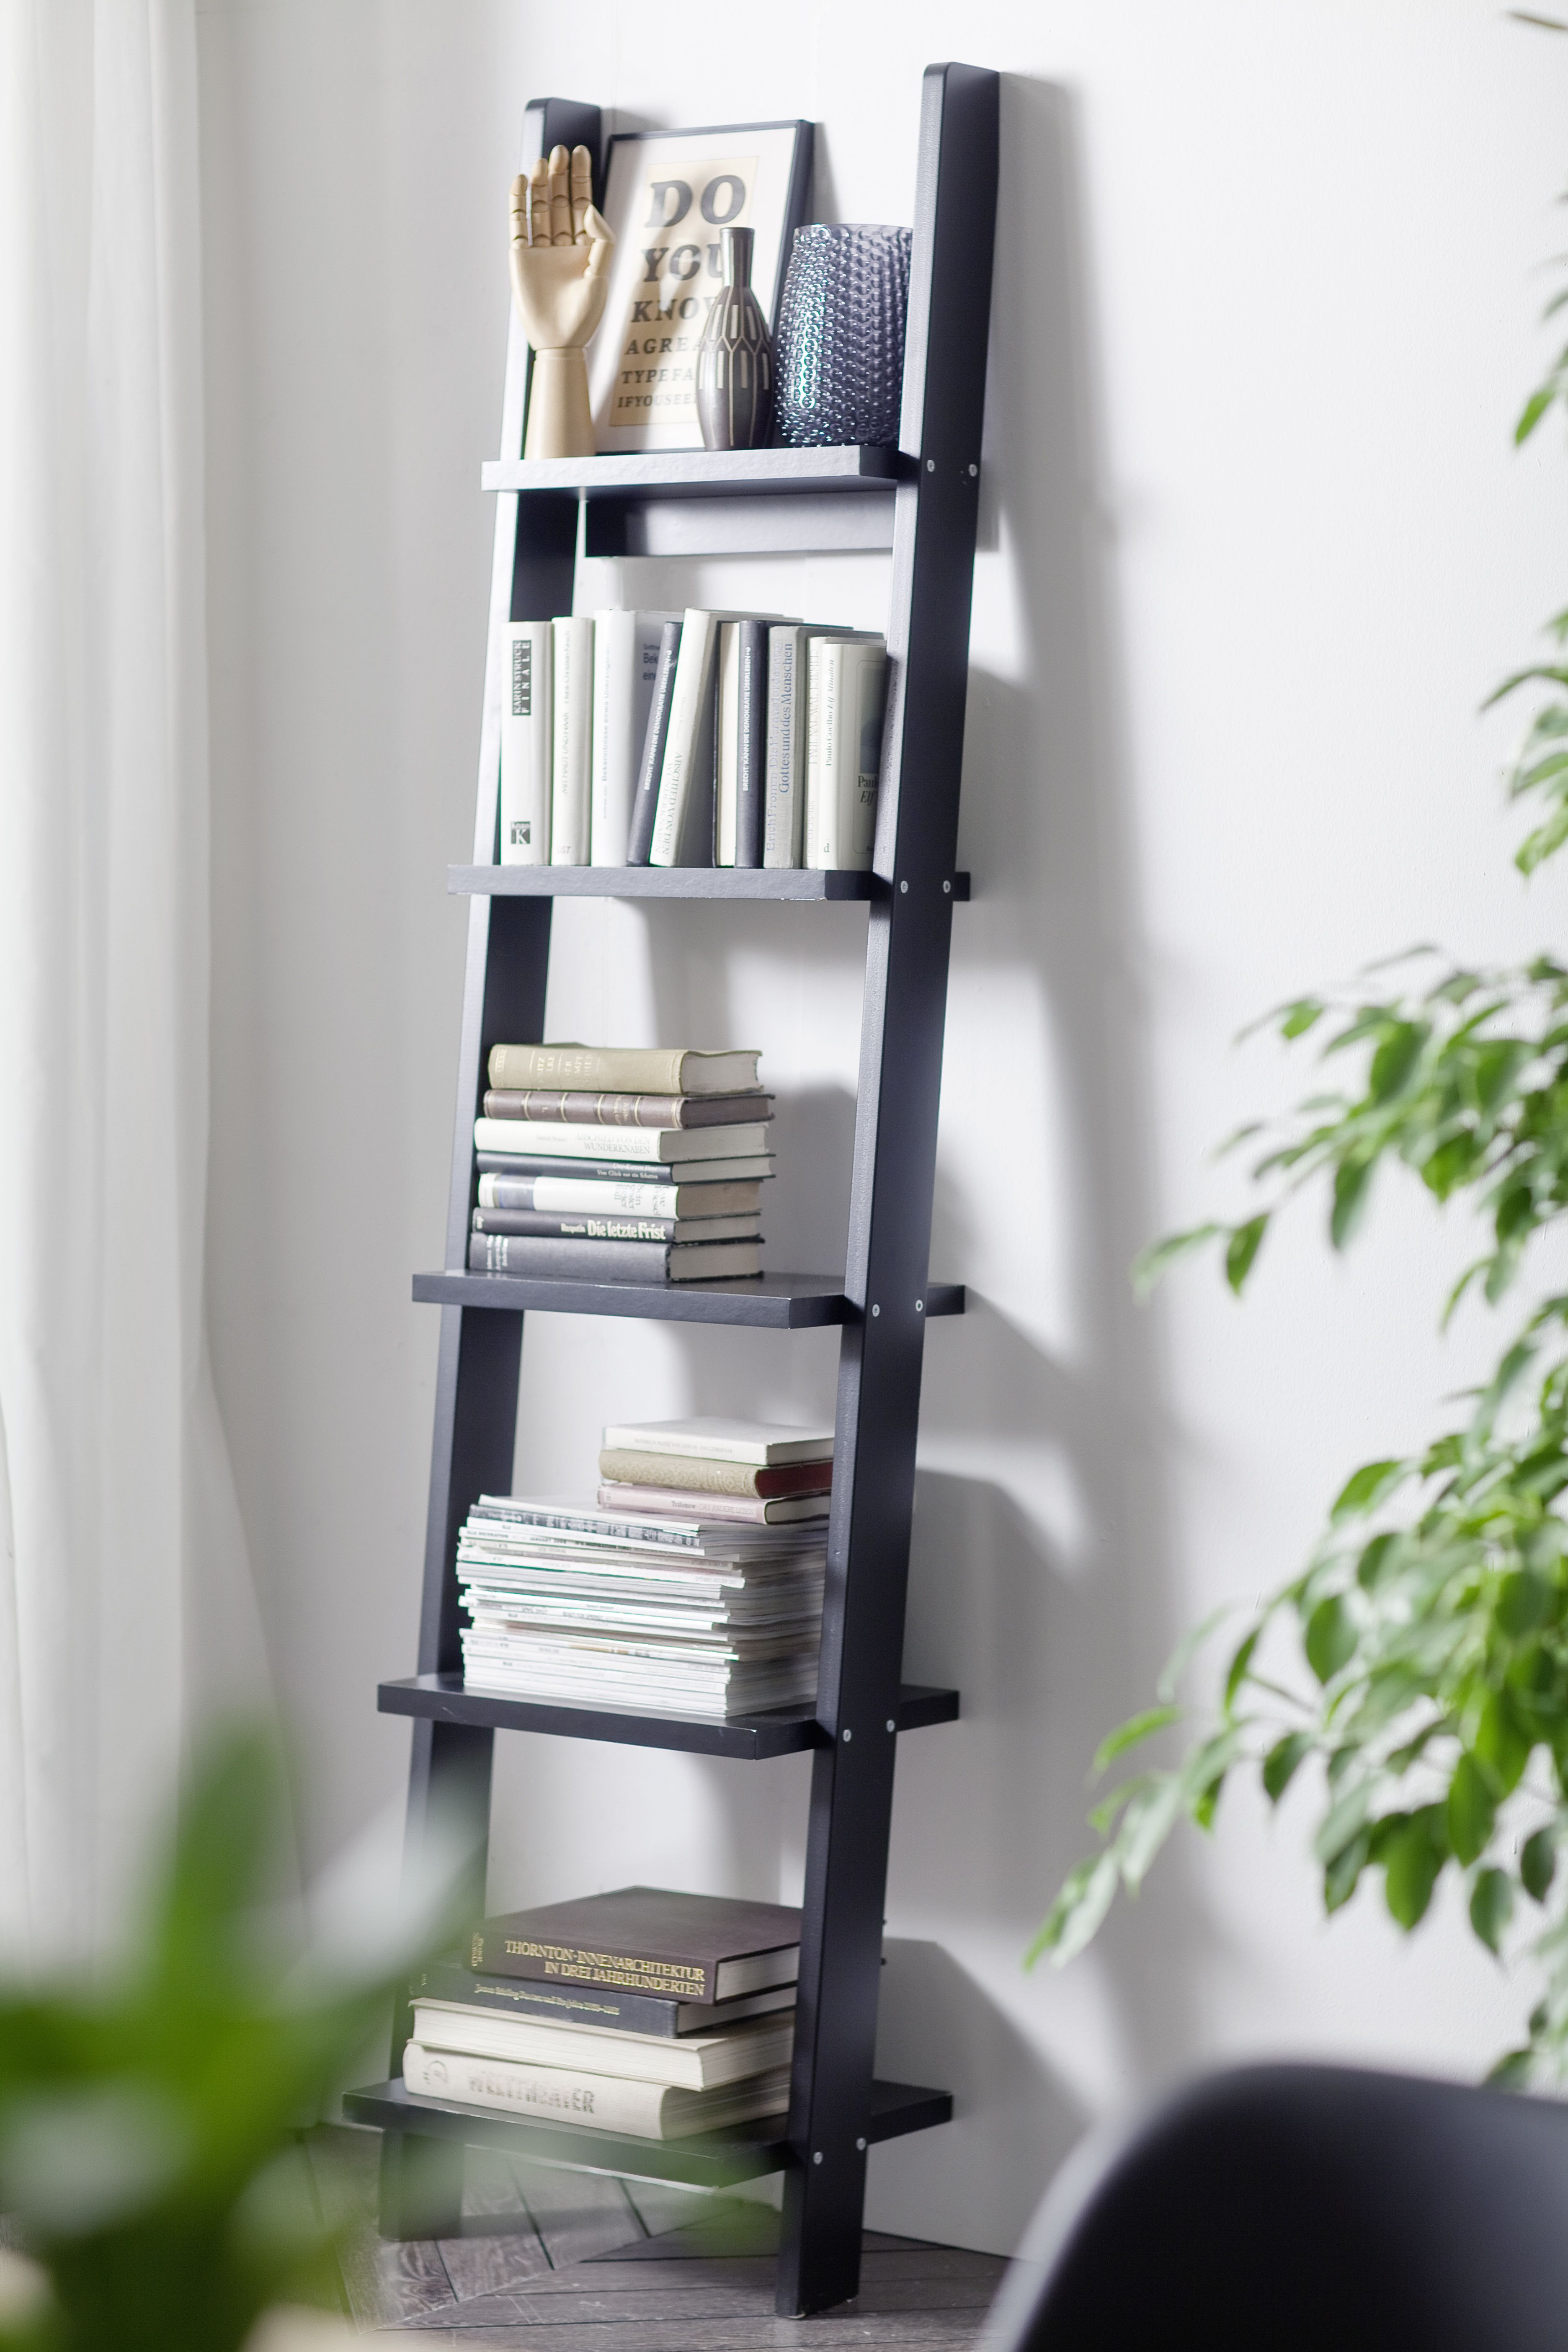 Wandrek Planten Tenzo Strada Wandrek In 2019 Fonq Opbergen Ladder Bookcase